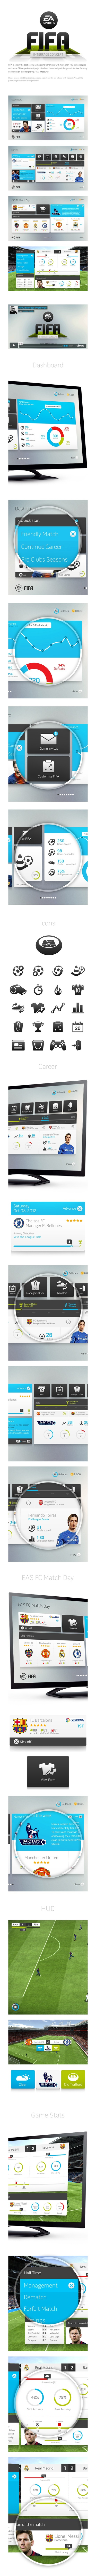 Fifa interface concept - Rodrigo Bellão